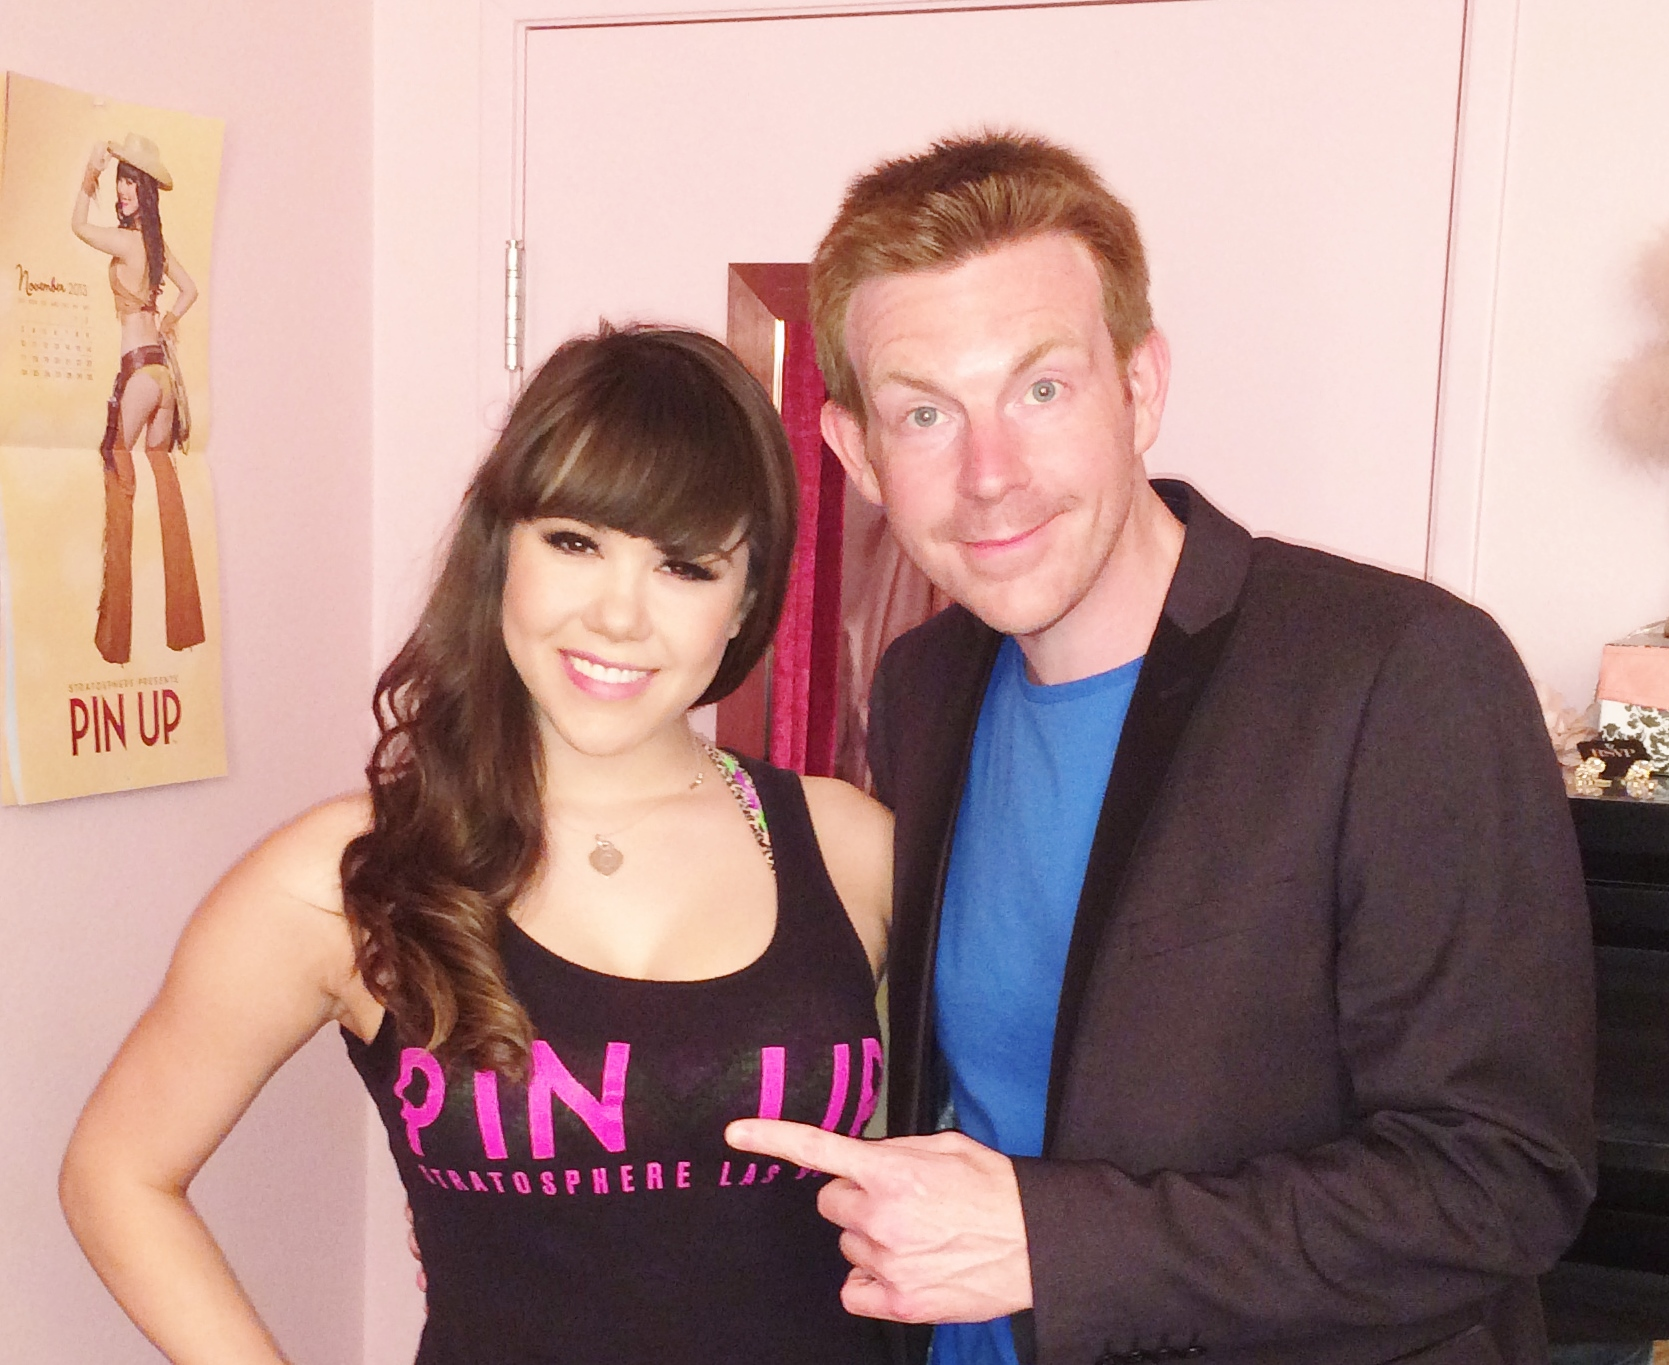 Enjoy Celebrity Radio's Claire Sinclair Interview Playboy Playmate Pin Up Las Vegas… It's not everyday you get to see a Playmate of the Year. Well, […]